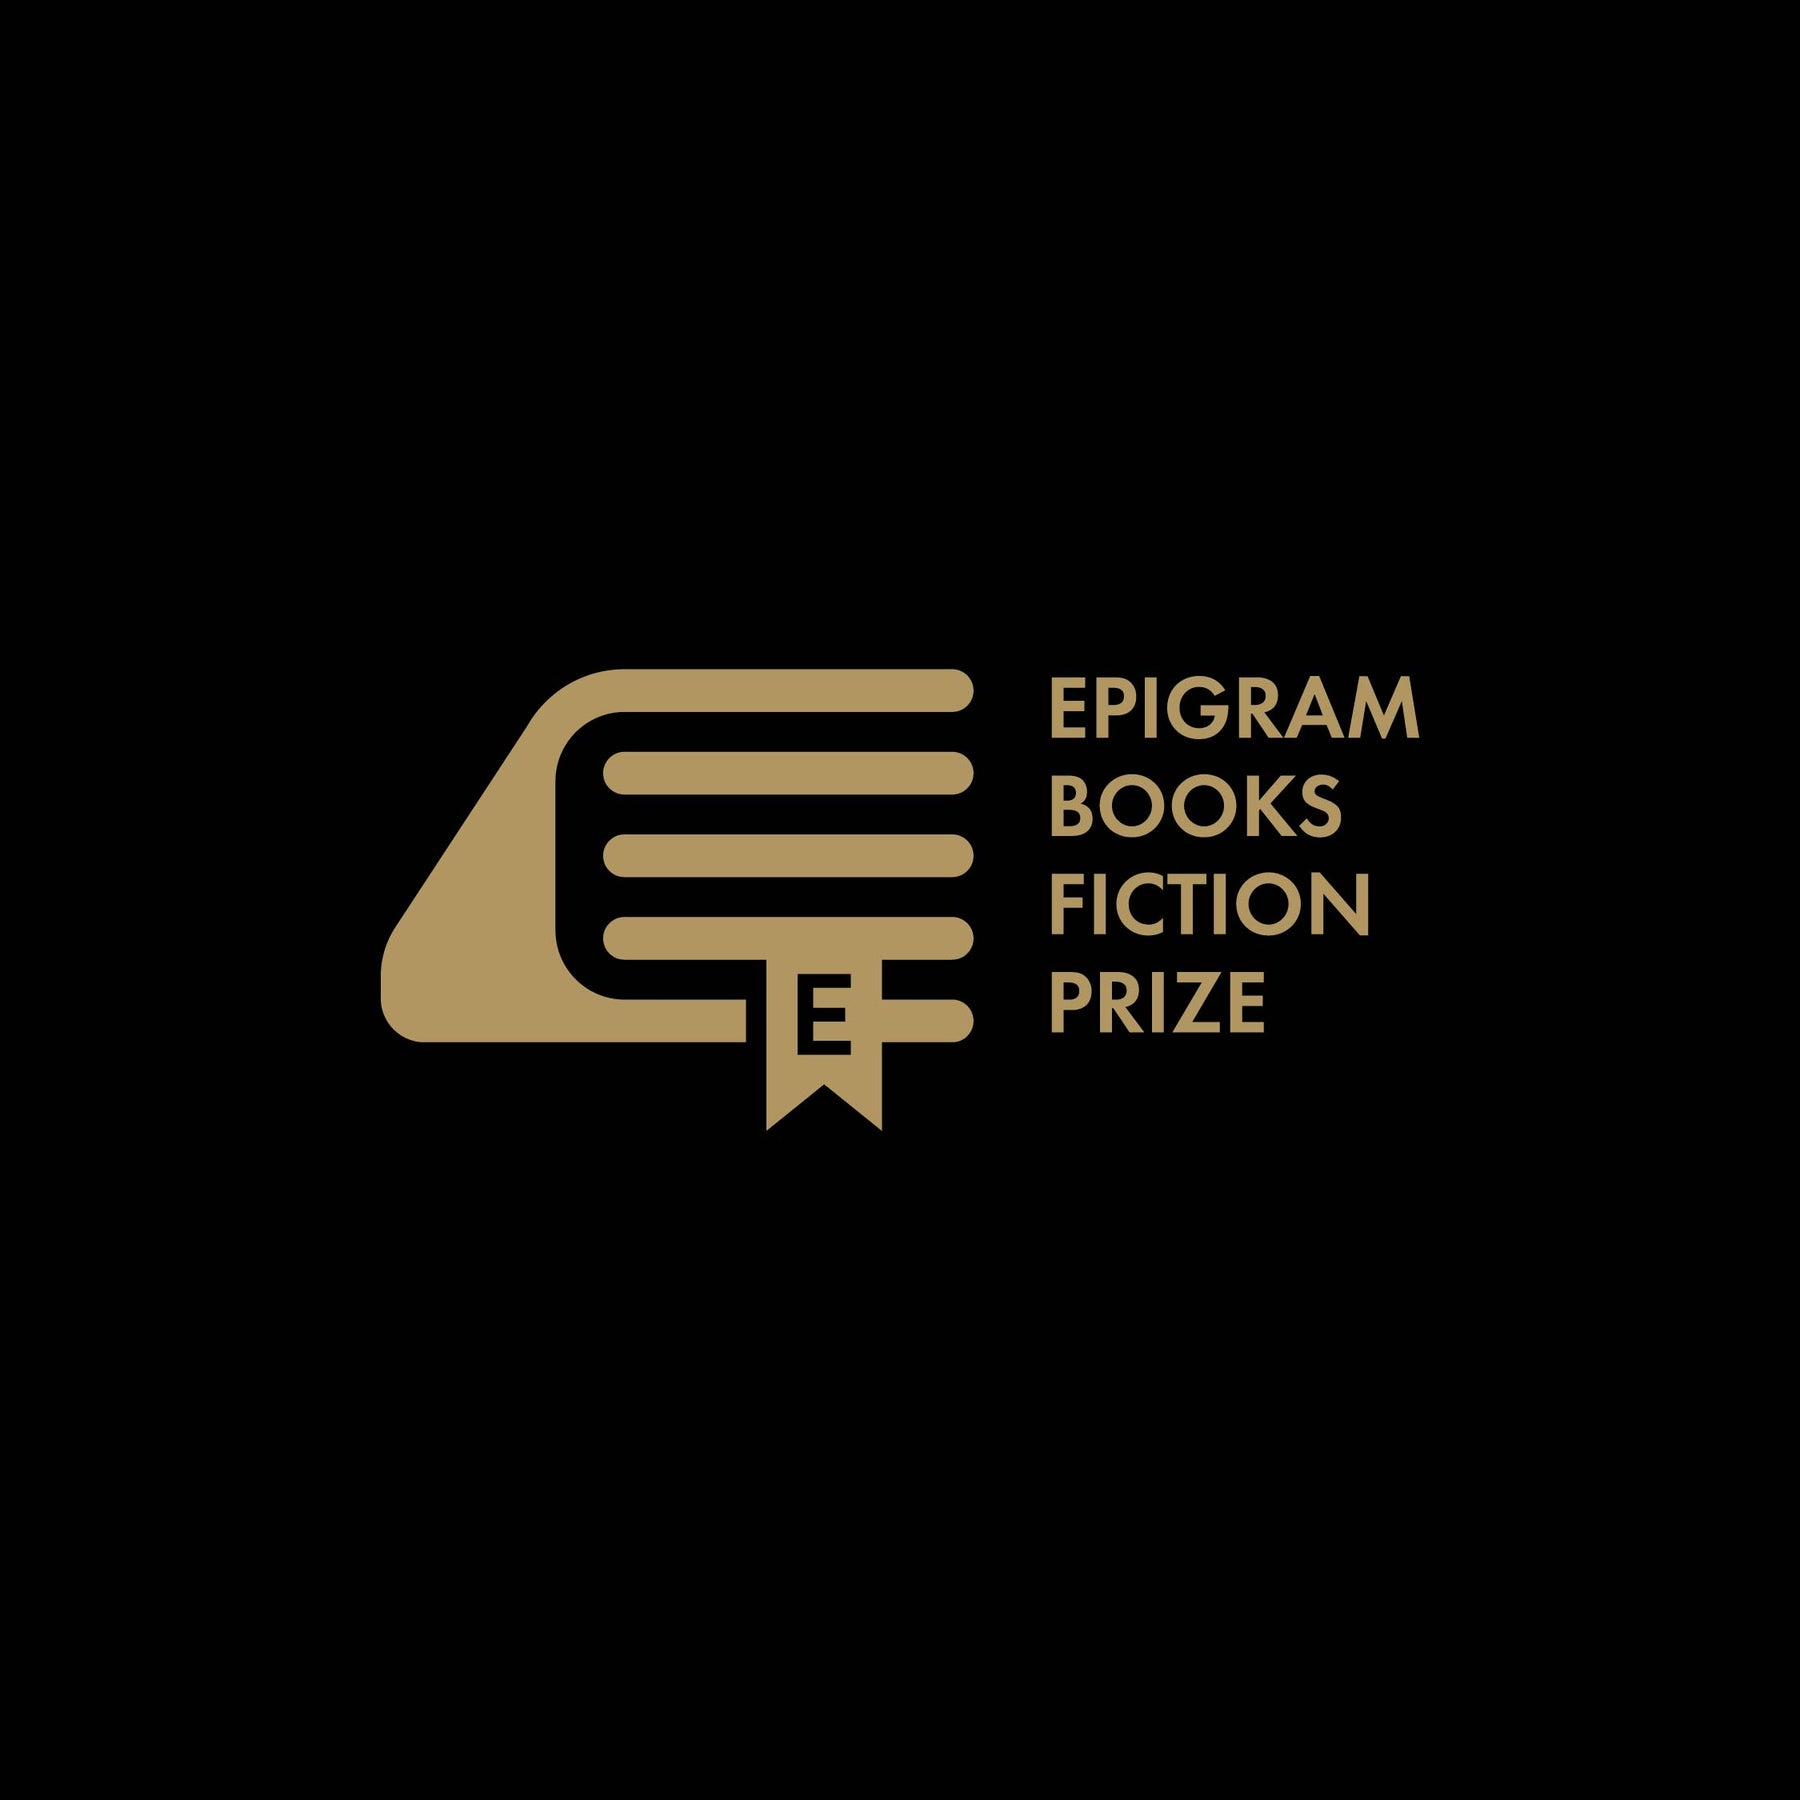 Who's in the longlist for EBFP 2021?